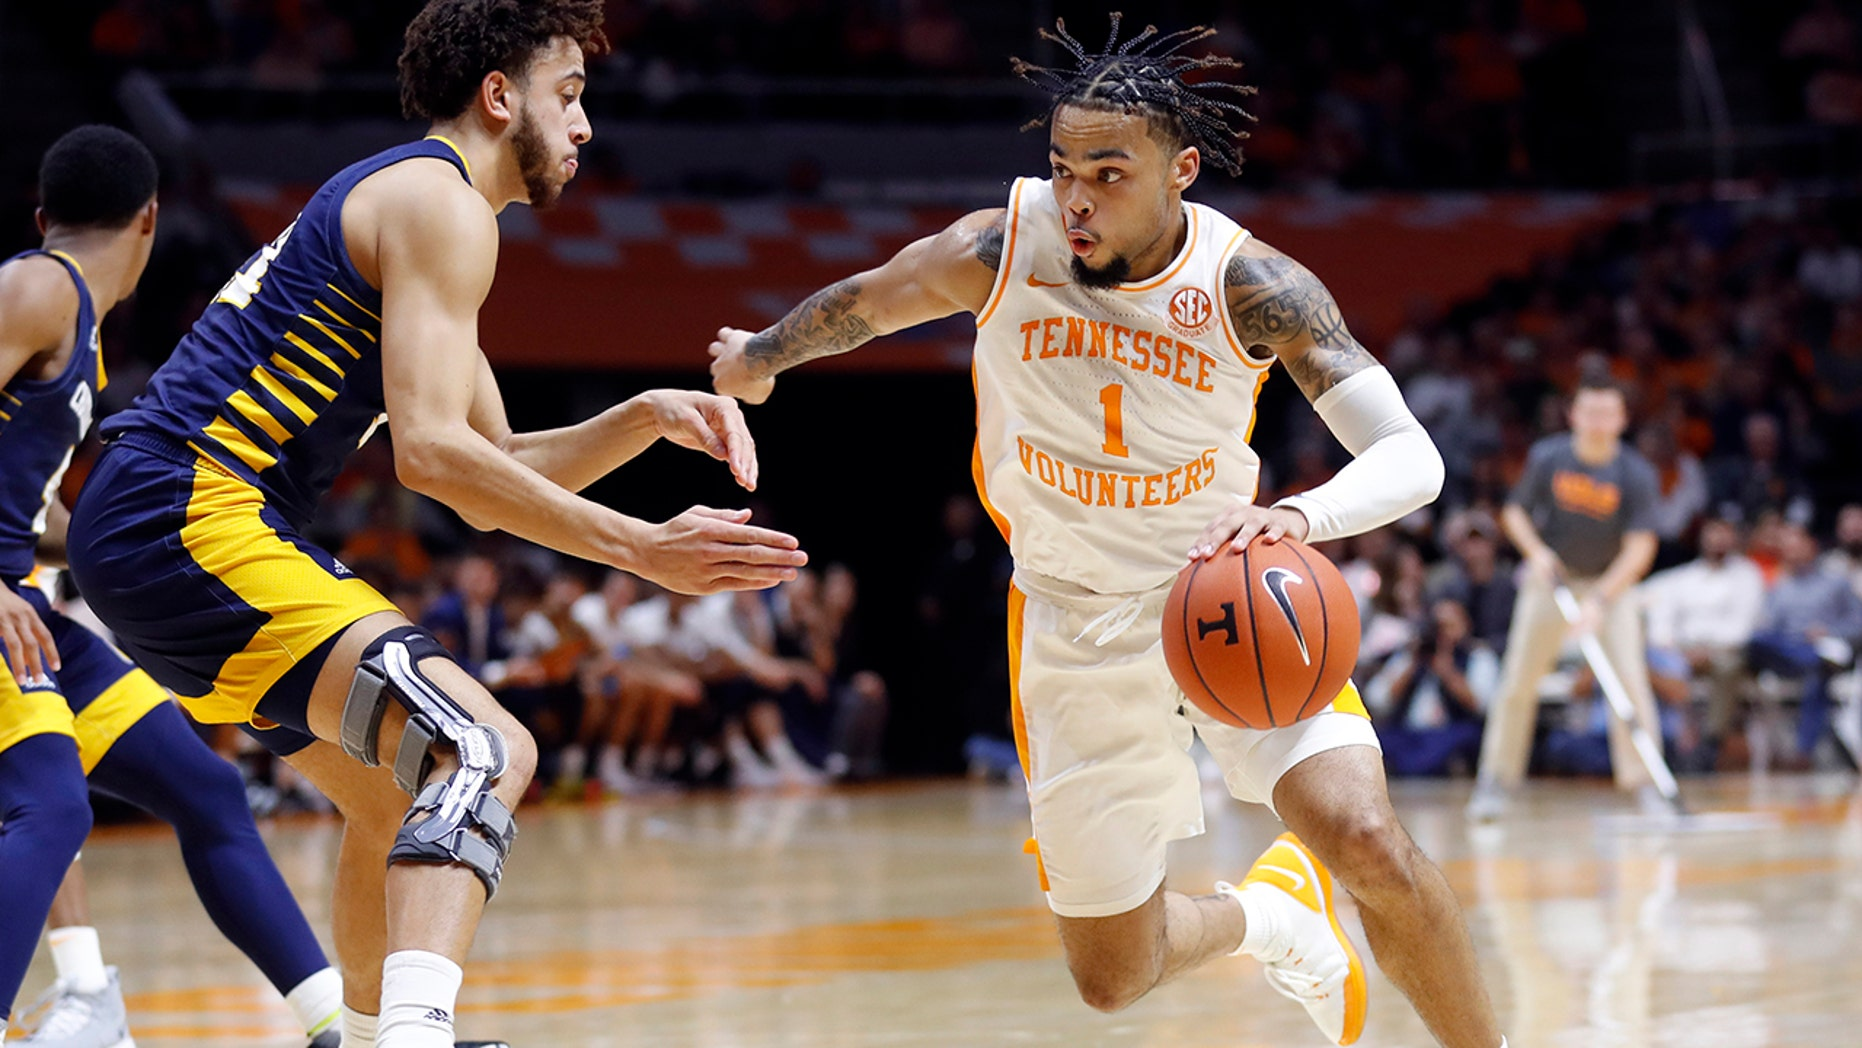 Tennessee guard Lamonte Turner, right, drives against Chattanooga forward Rod Johnson, left, during the second half of an NCAA college basketball game Monday, Nov. 25, 2019, in Knoxville, Tenn. (AP Photo/Wade Payne)